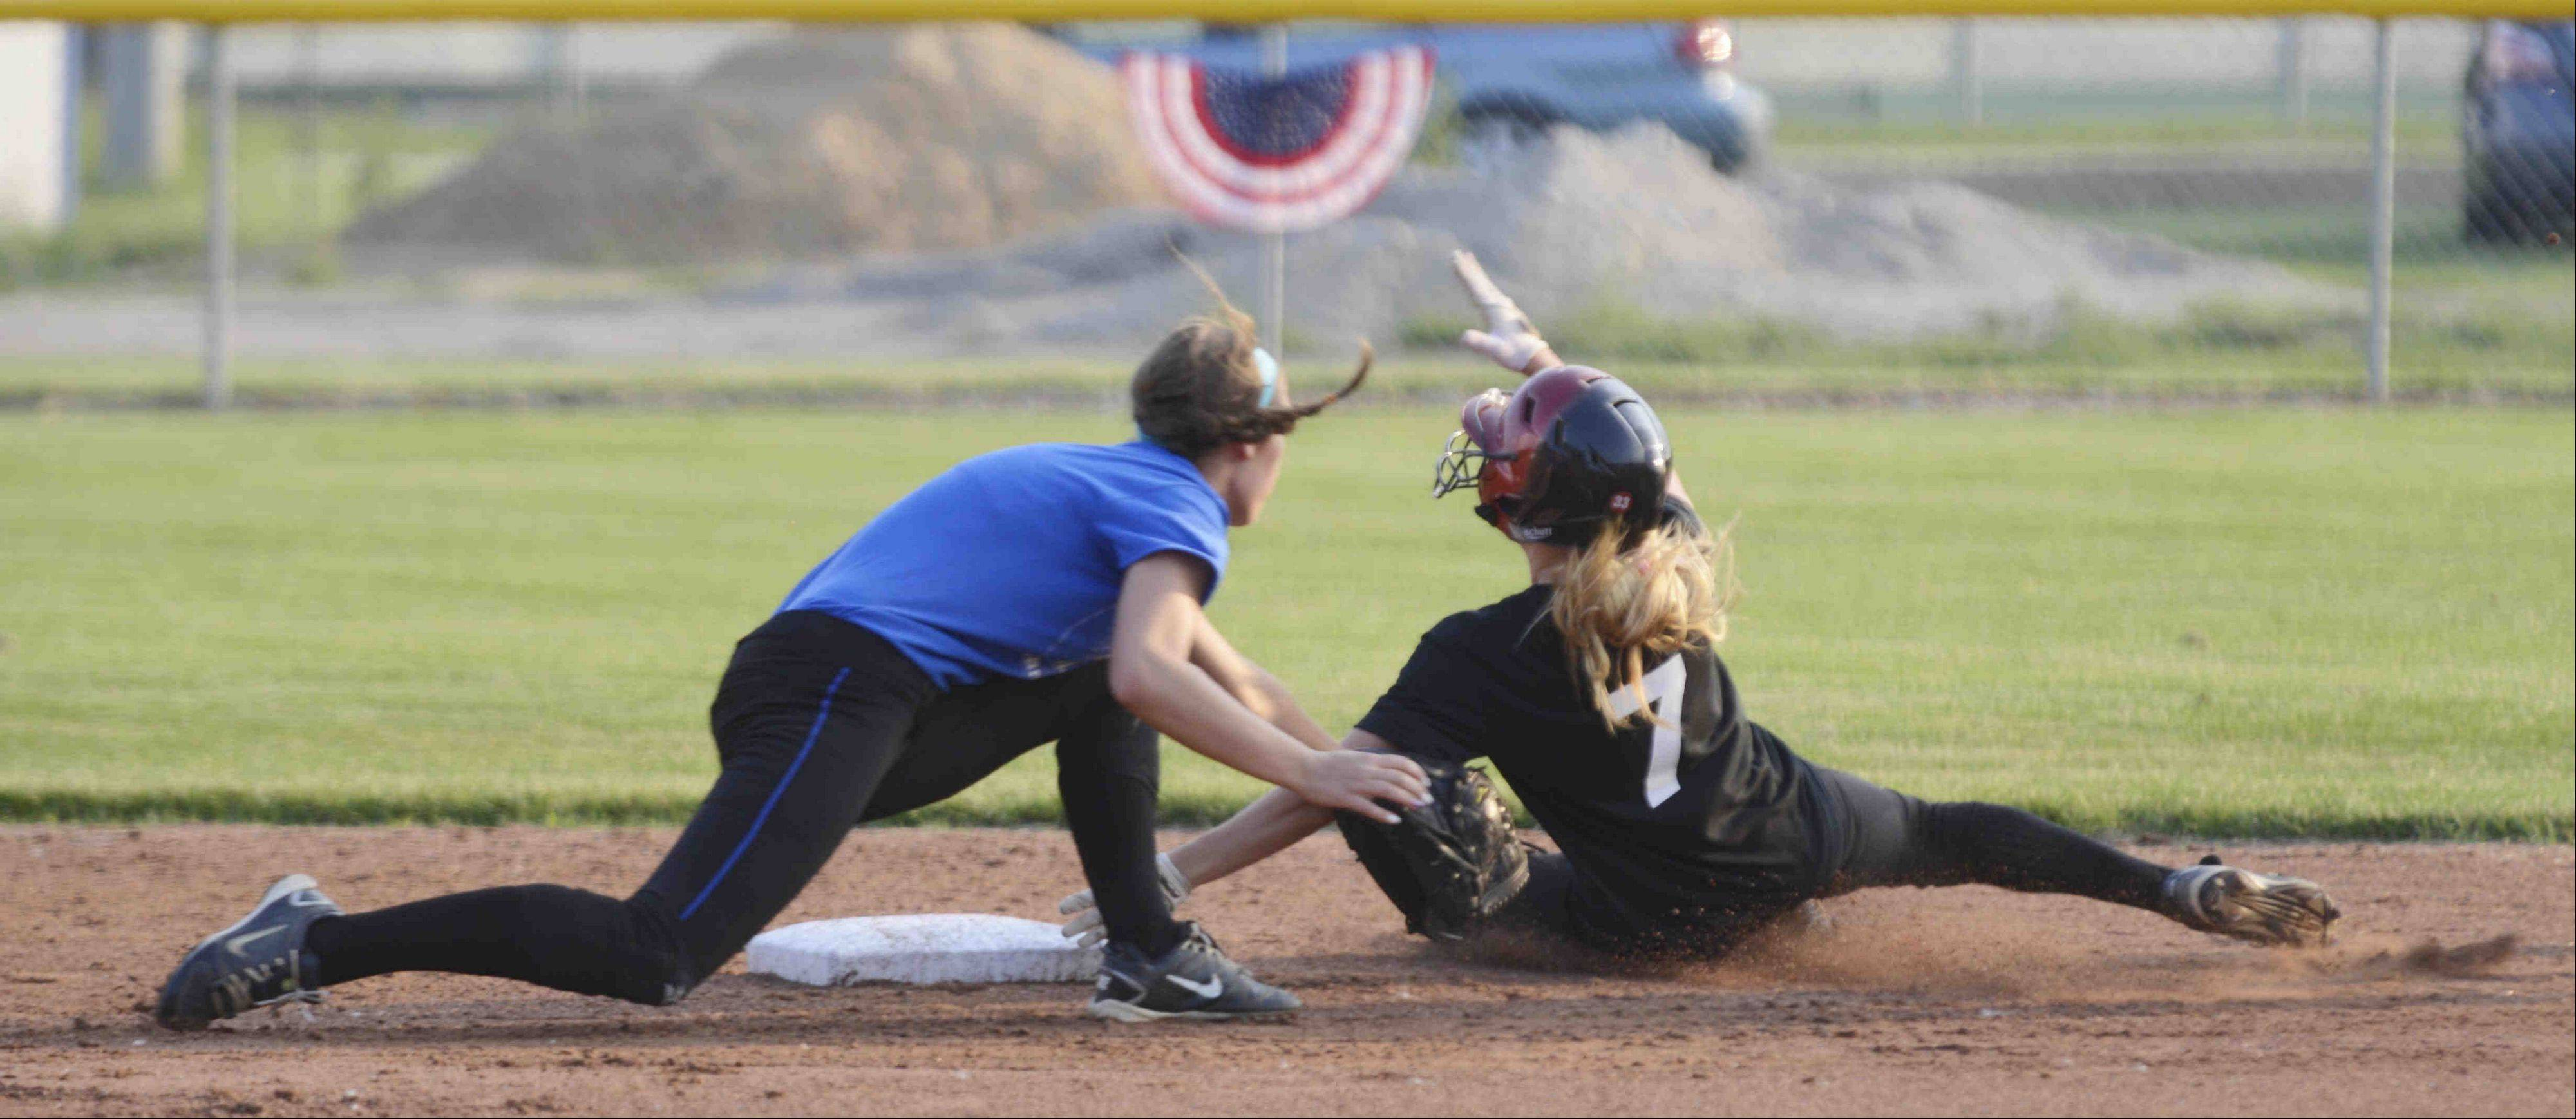 East All Star Rachel Odolski is tagged out at second by West All Star shortstop Kali Kossakowski Monday during the Tenth Annual Fehlman Memorial Senior All-Star softball game at Judson University.